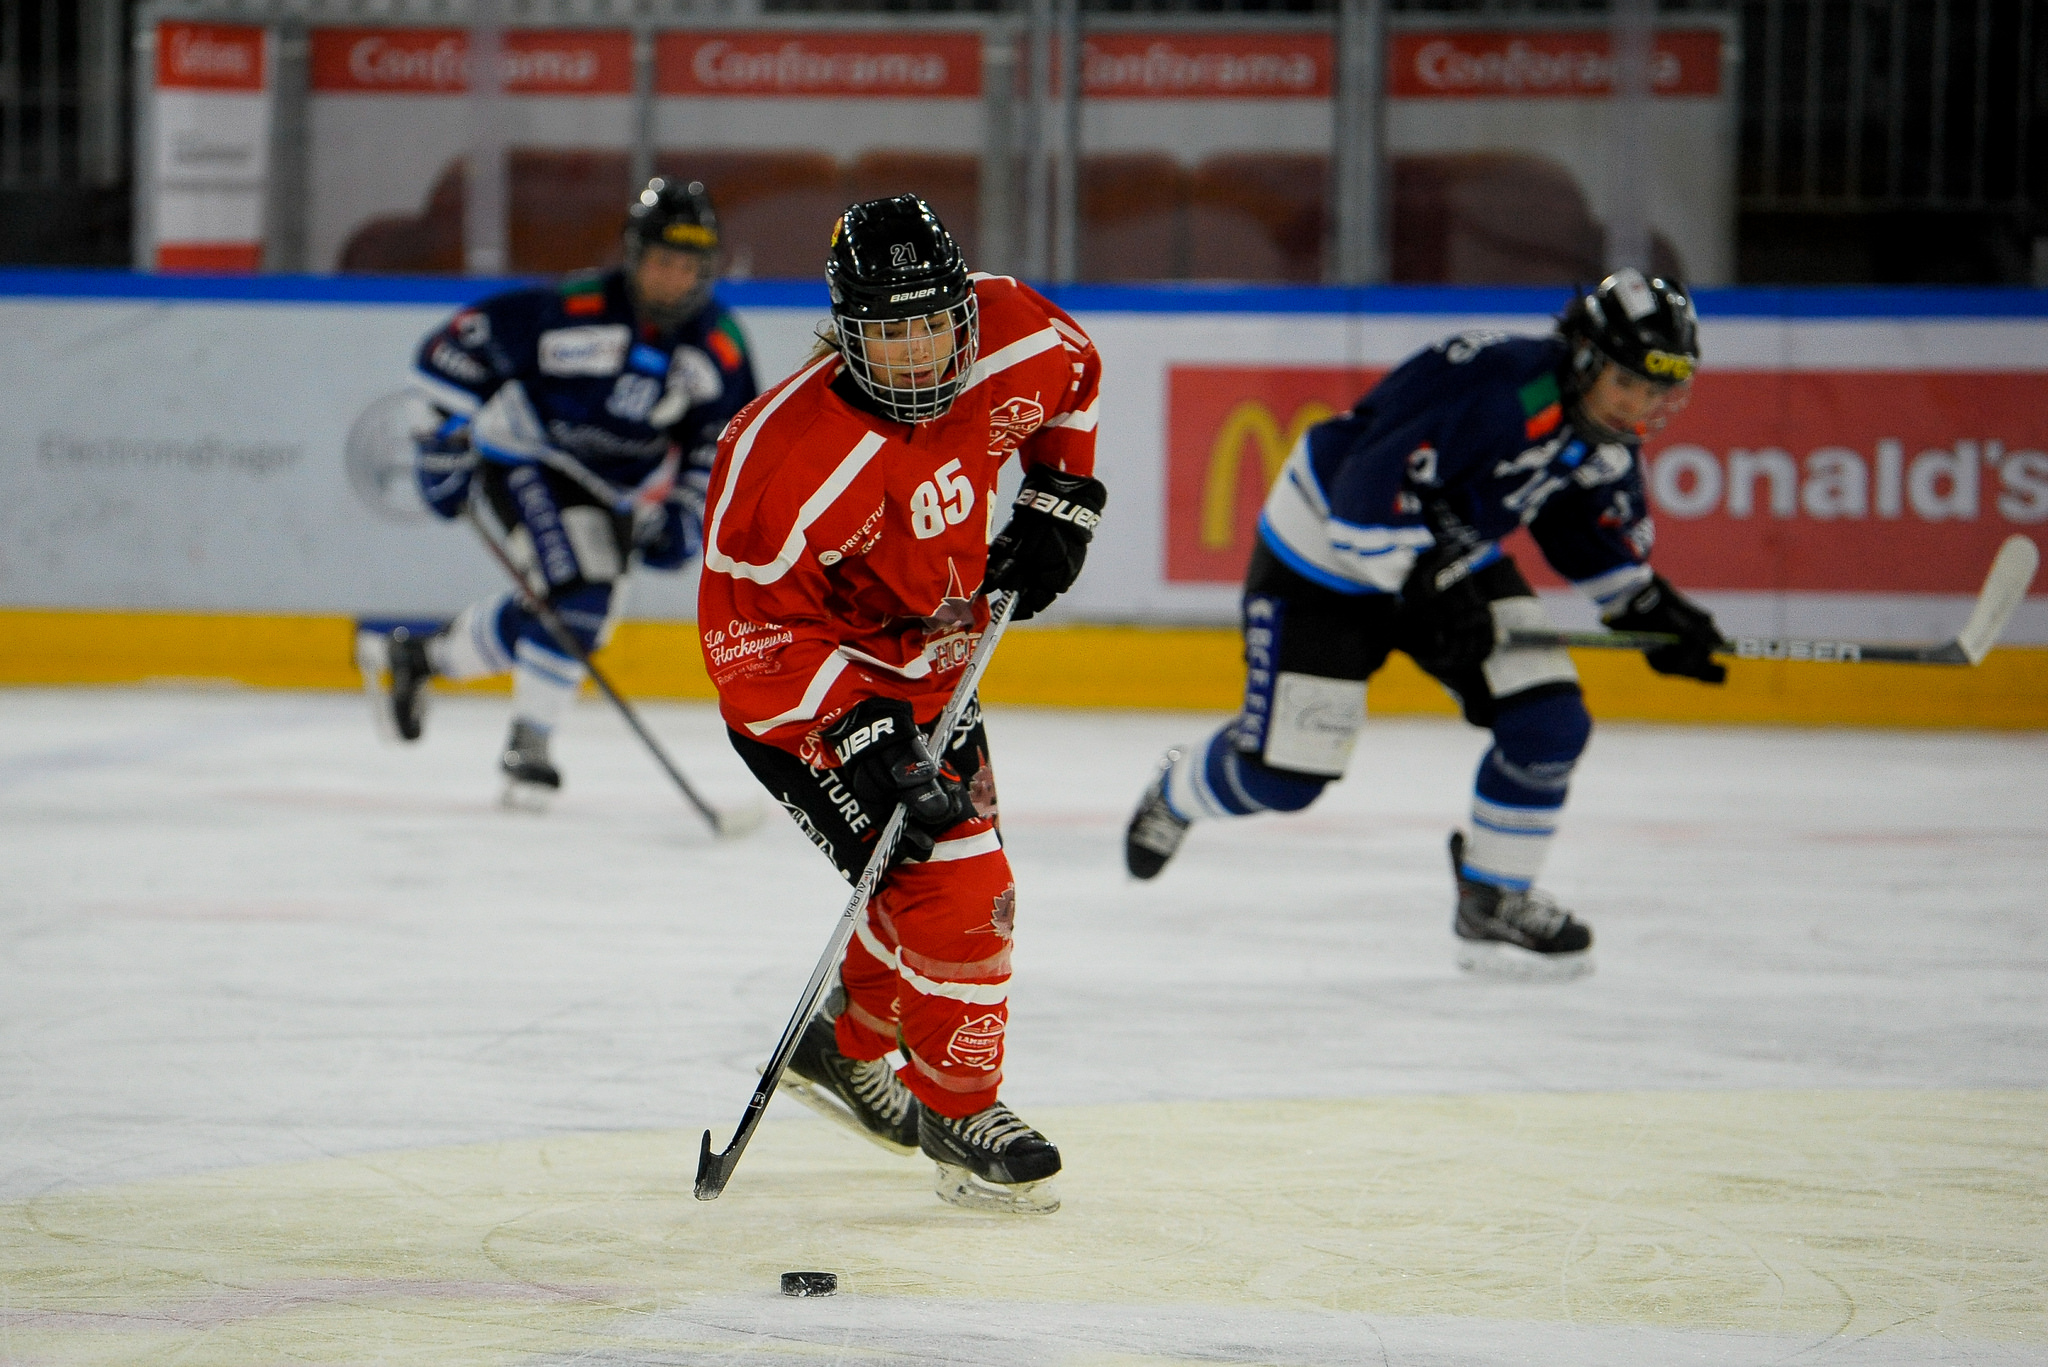 HCFL - Fribourg